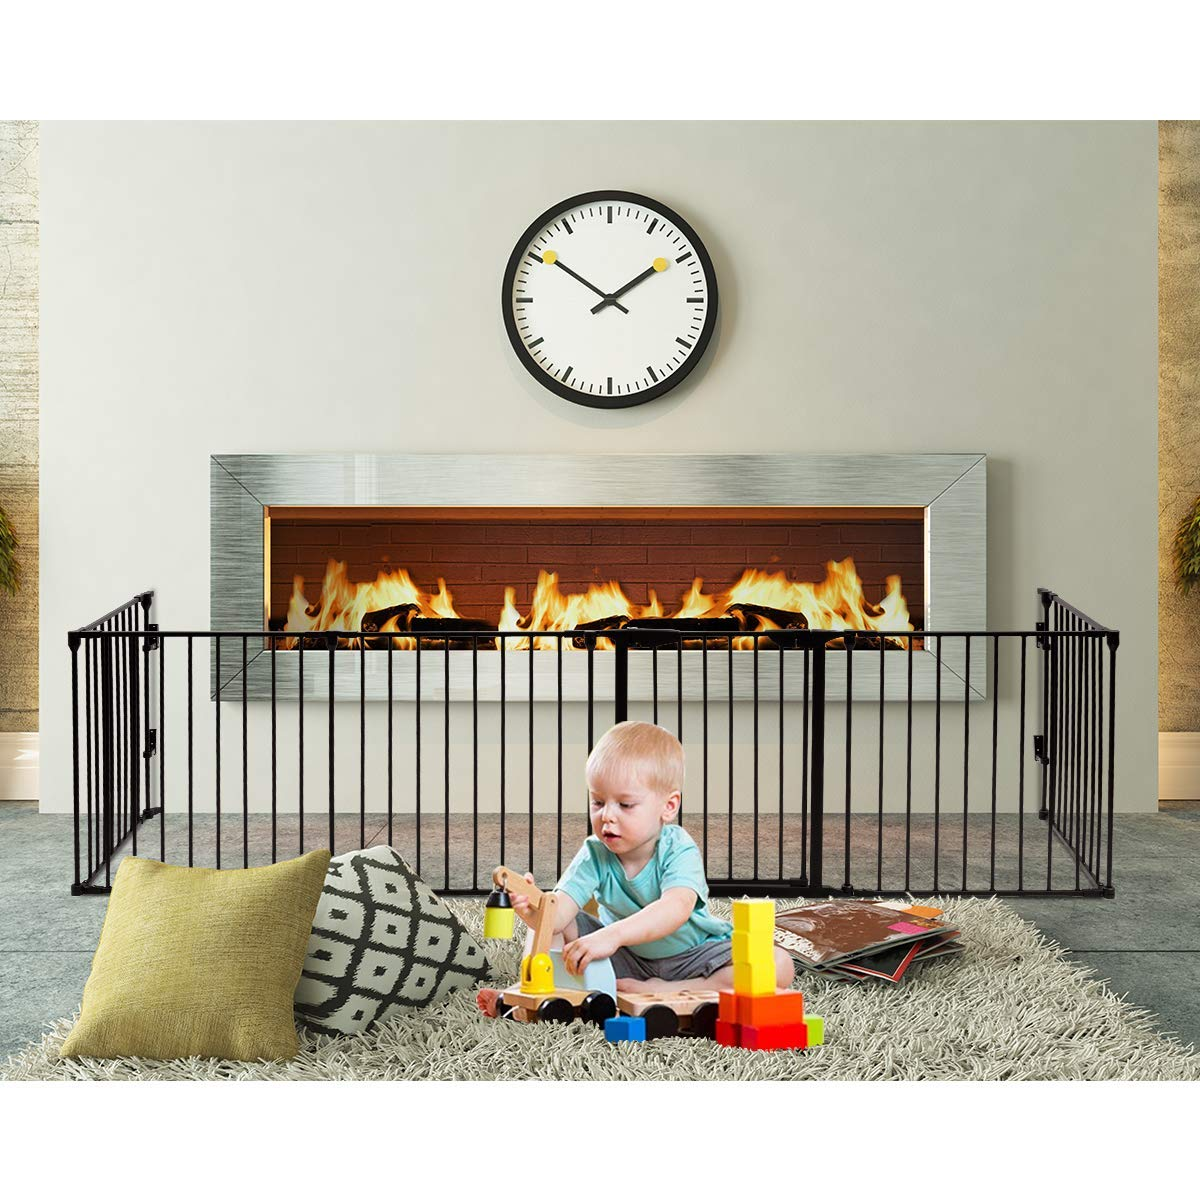 PETSJOY 6 Panels Baby Safety Gate, 5-in-1 Fireplace Fence, Wide Barrier Gate with Walk-Through Door in Two Directions, Add/Decrease Panels Directly, Wall-Mount Metal Gate for Pet & Child, Super Wide by PETSJOY